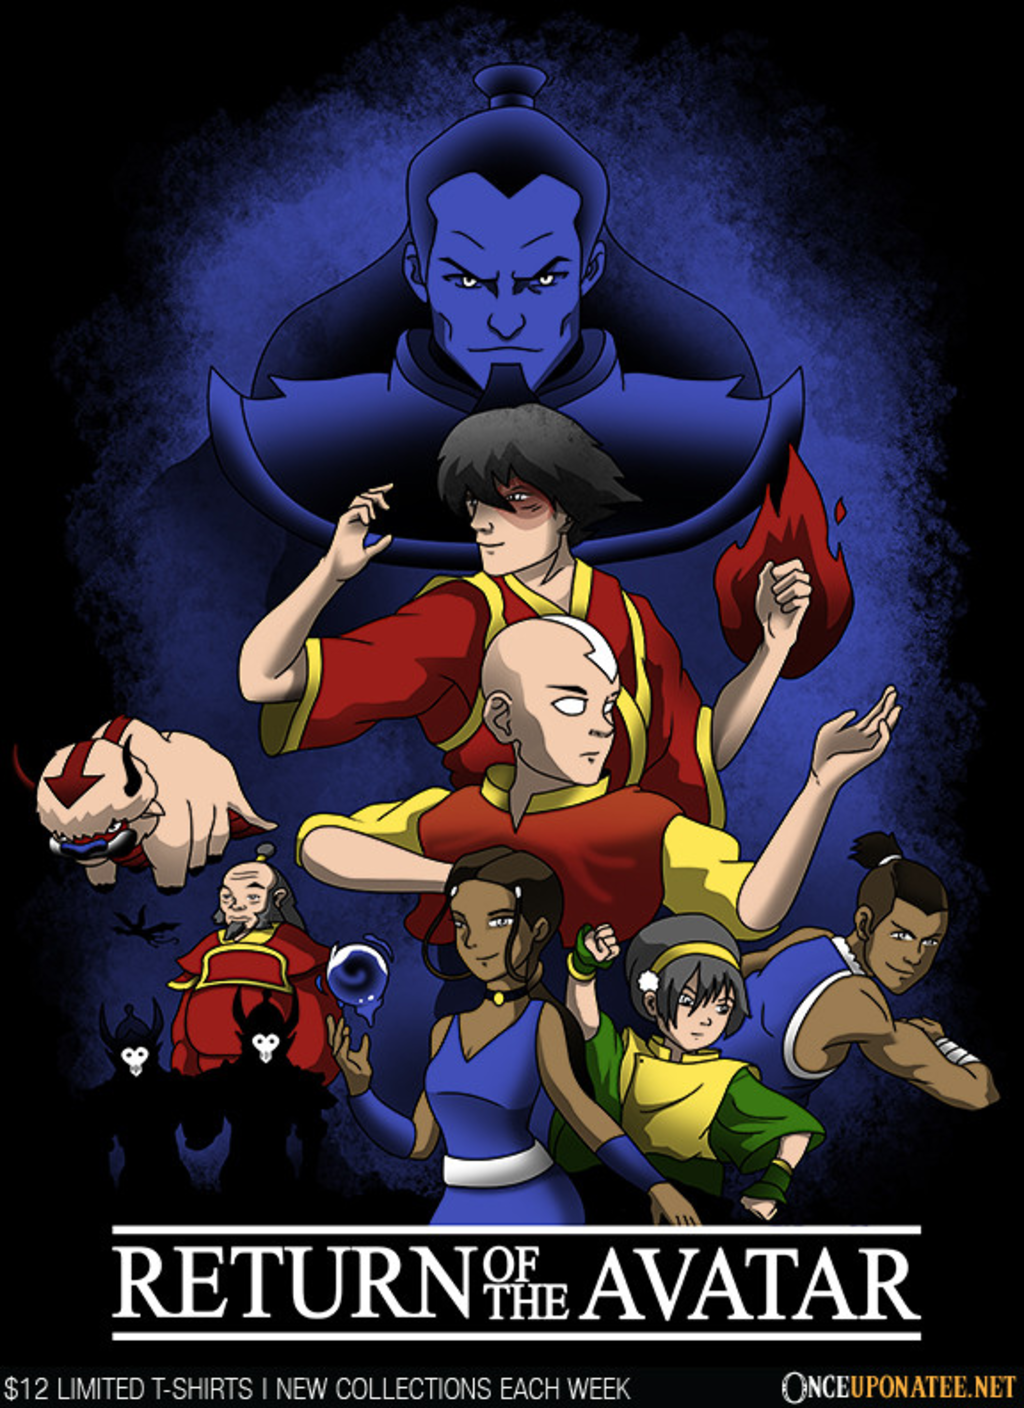 Once Upon a Tee: Return of the Avatar